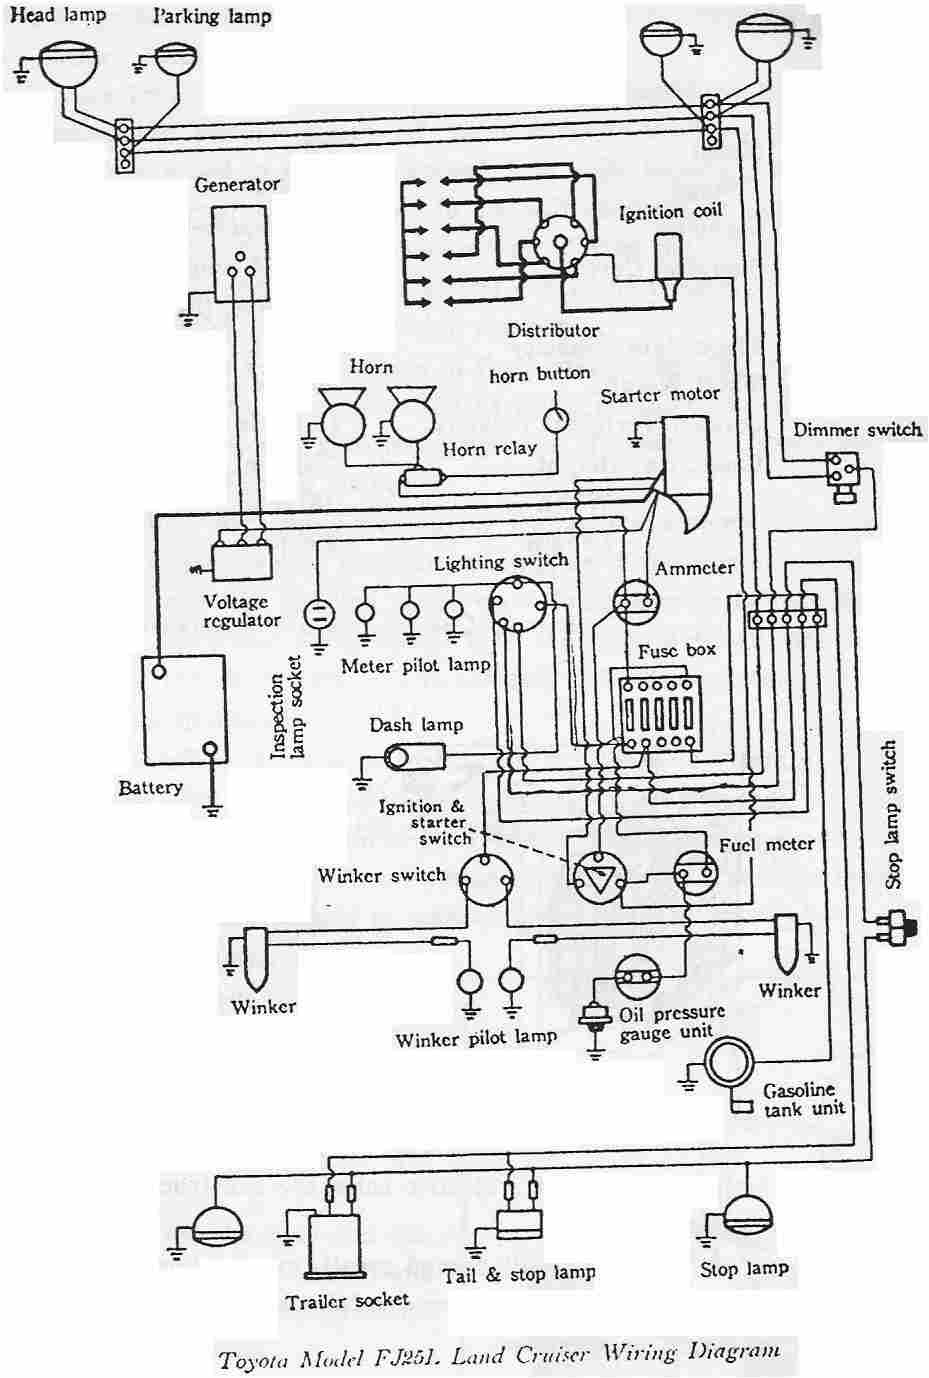 Toyota Land Cruiser Fj25 Electrical Wiring Diagram